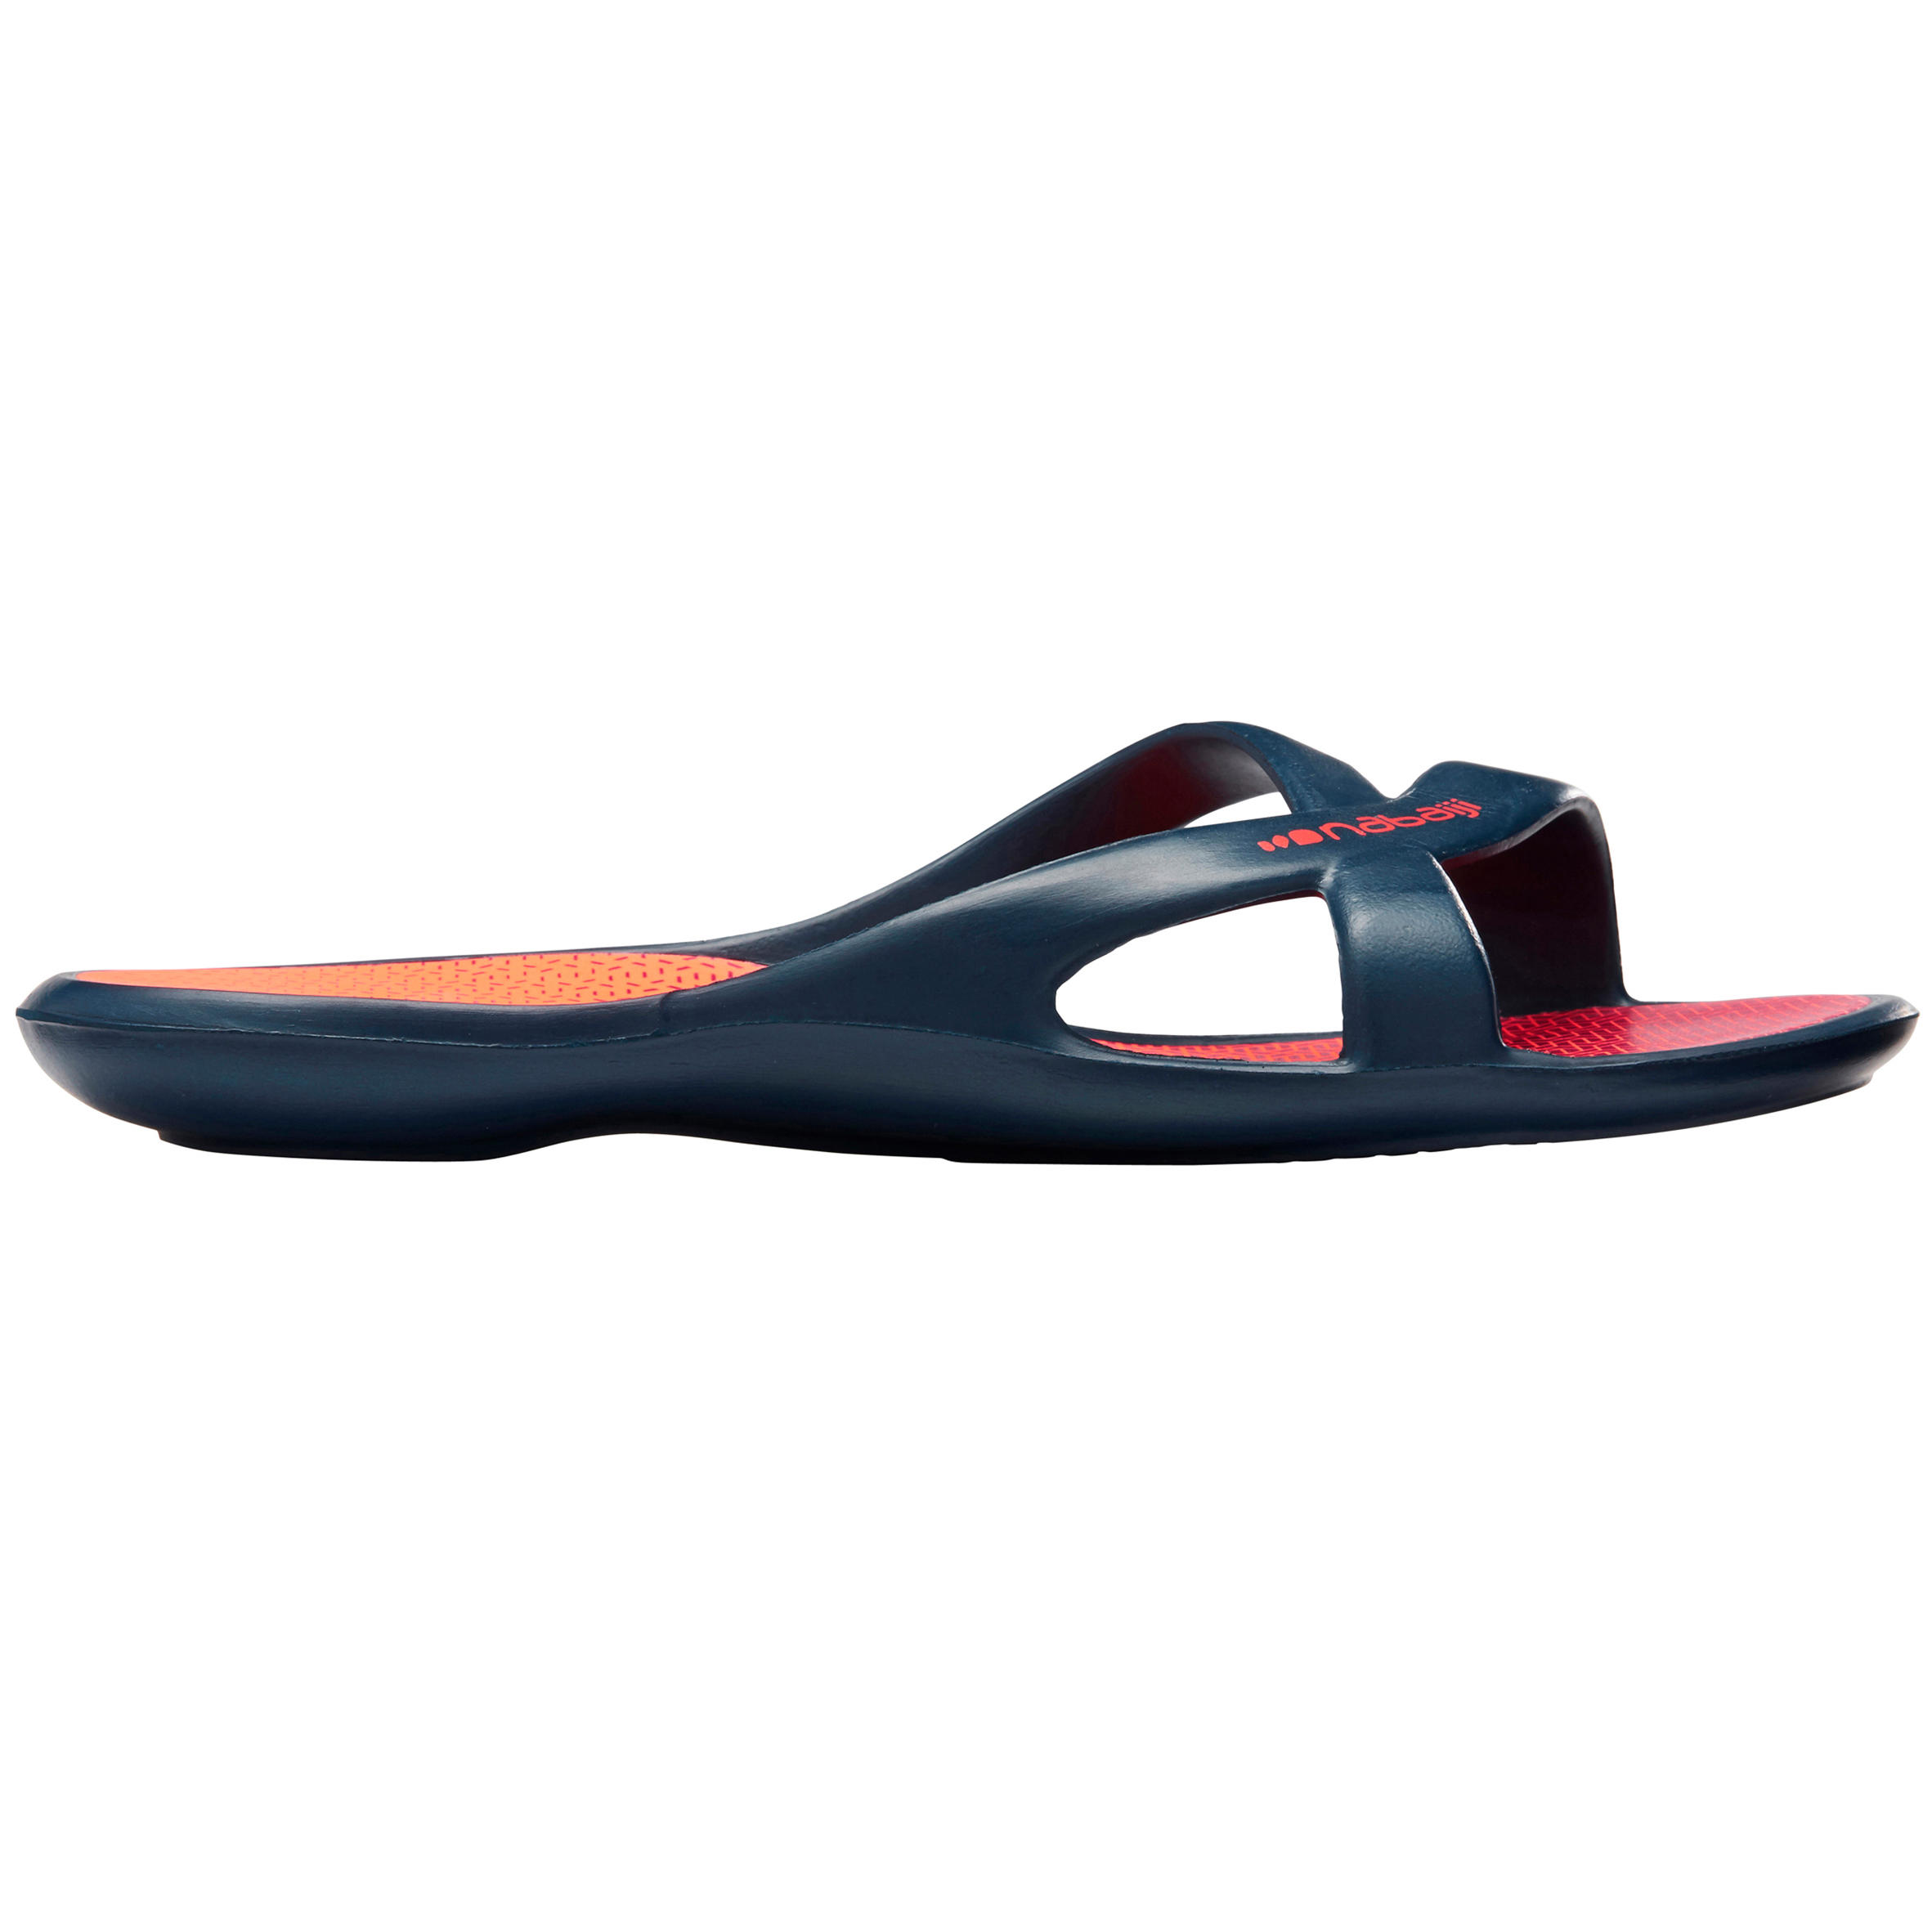 WOMEN'S METASLAP SSP 500 POOL SANDALS PRINTED HEXA NAVY